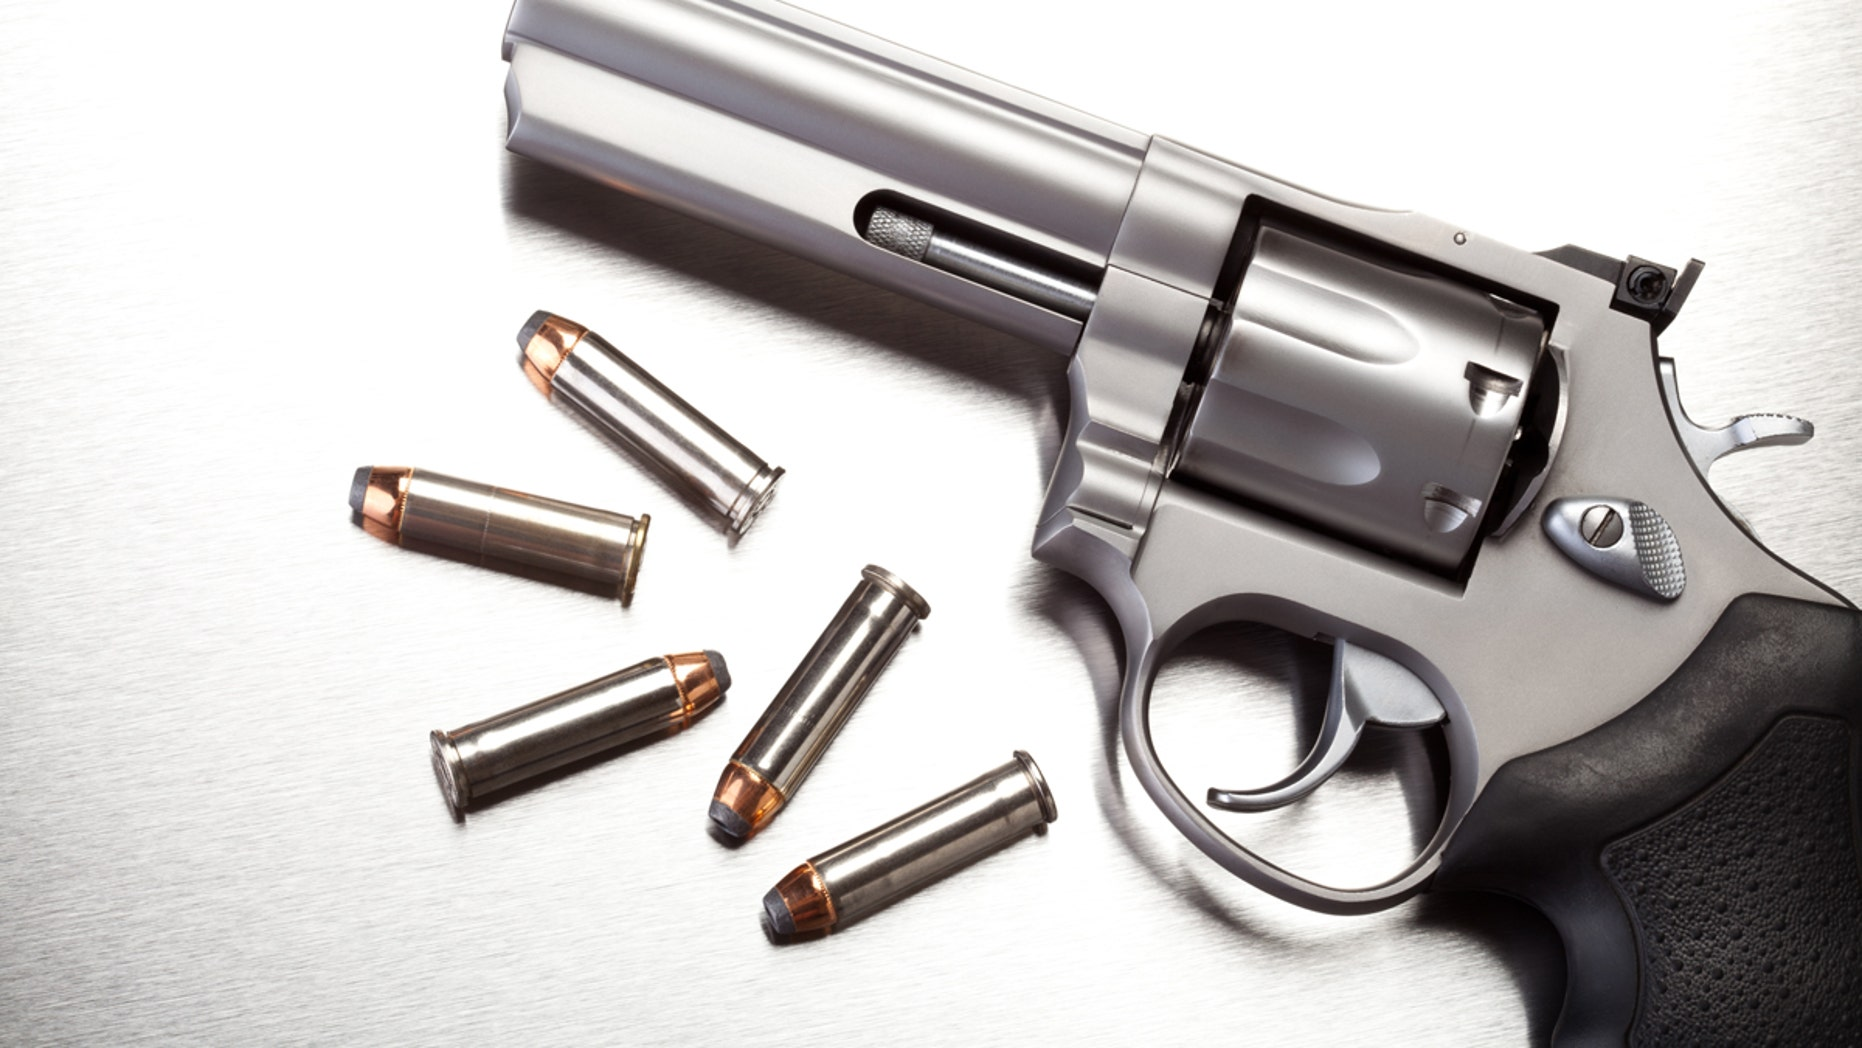 A Kansas City couple claims in a federal lawsuit that state requirements for foster parents who own guns violate their constitutional rights.